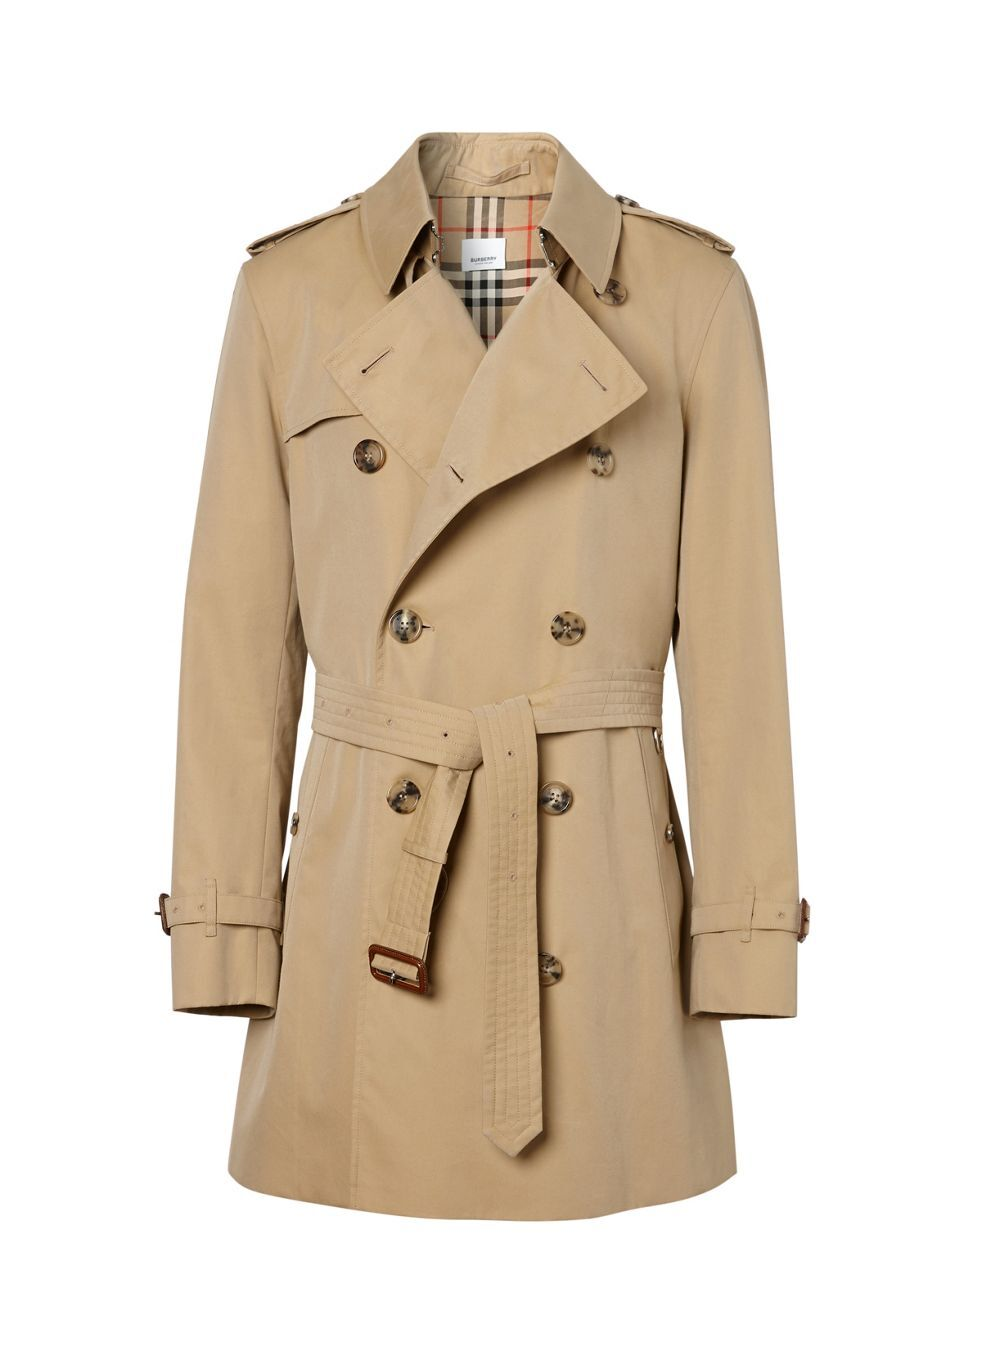 Burberry Women's Trench Coats Harvey Nichols